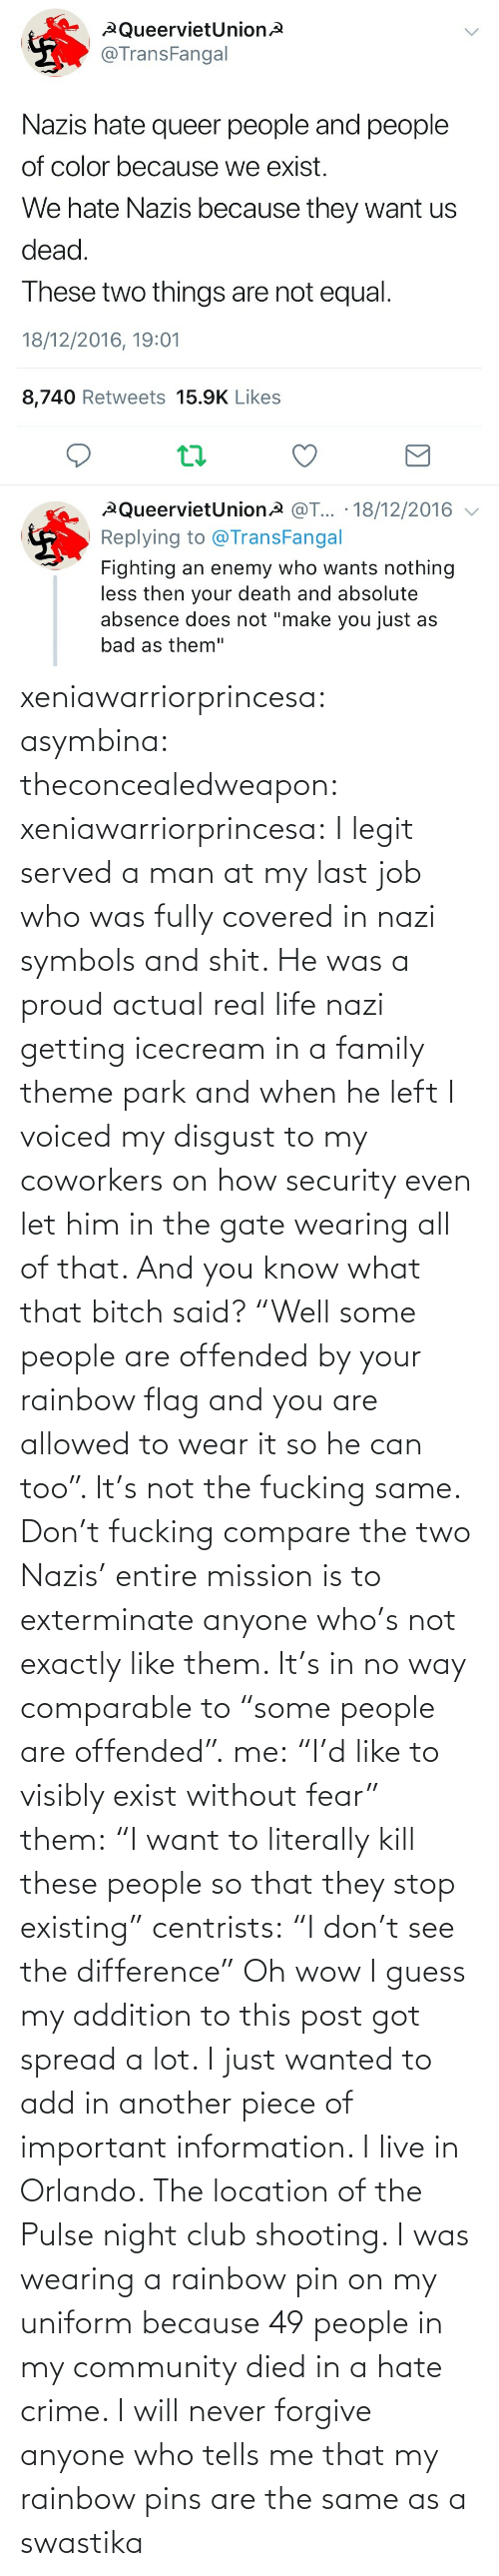 "Coworkers: xeniawarriorprincesa:  asymbina:  theconcealedweapon:  xeniawarriorprincesa:  I legit served a man at my last job who was fully covered in nazi symbols and shit. He was a proud actual real life nazi getting icecream in a family theme park and when he left I voiced my disgust to my coworkers on how security even let him in the gate wearing all of that. And you know what that bitch said? ""Well some people are offended by your rainbow flag and you are allowed to wear it so he can too"". It's not the fucking same. Don't fucking compare the two  Nazis' entire mission is to exterminate anyone who's not exactly like them. It's in no way comparable to ""some people are offended"".  me: ""I'd like to visibly exist without fear"" them: ""I want to literally kill these people so that they stop existing"" centrists: ""I don't see the difference""   Oh wow I guess my addition to this post got spread a lot. I just wanted to add in another piece of important information. I live in Orlando. The location of the Pulse night club shooting. I was wearing a rainbow pin on my uniform because 49 people in my community died in a hate crime. I will never forgive anyone who tells me that my rainbow pins are the same as a swastika"